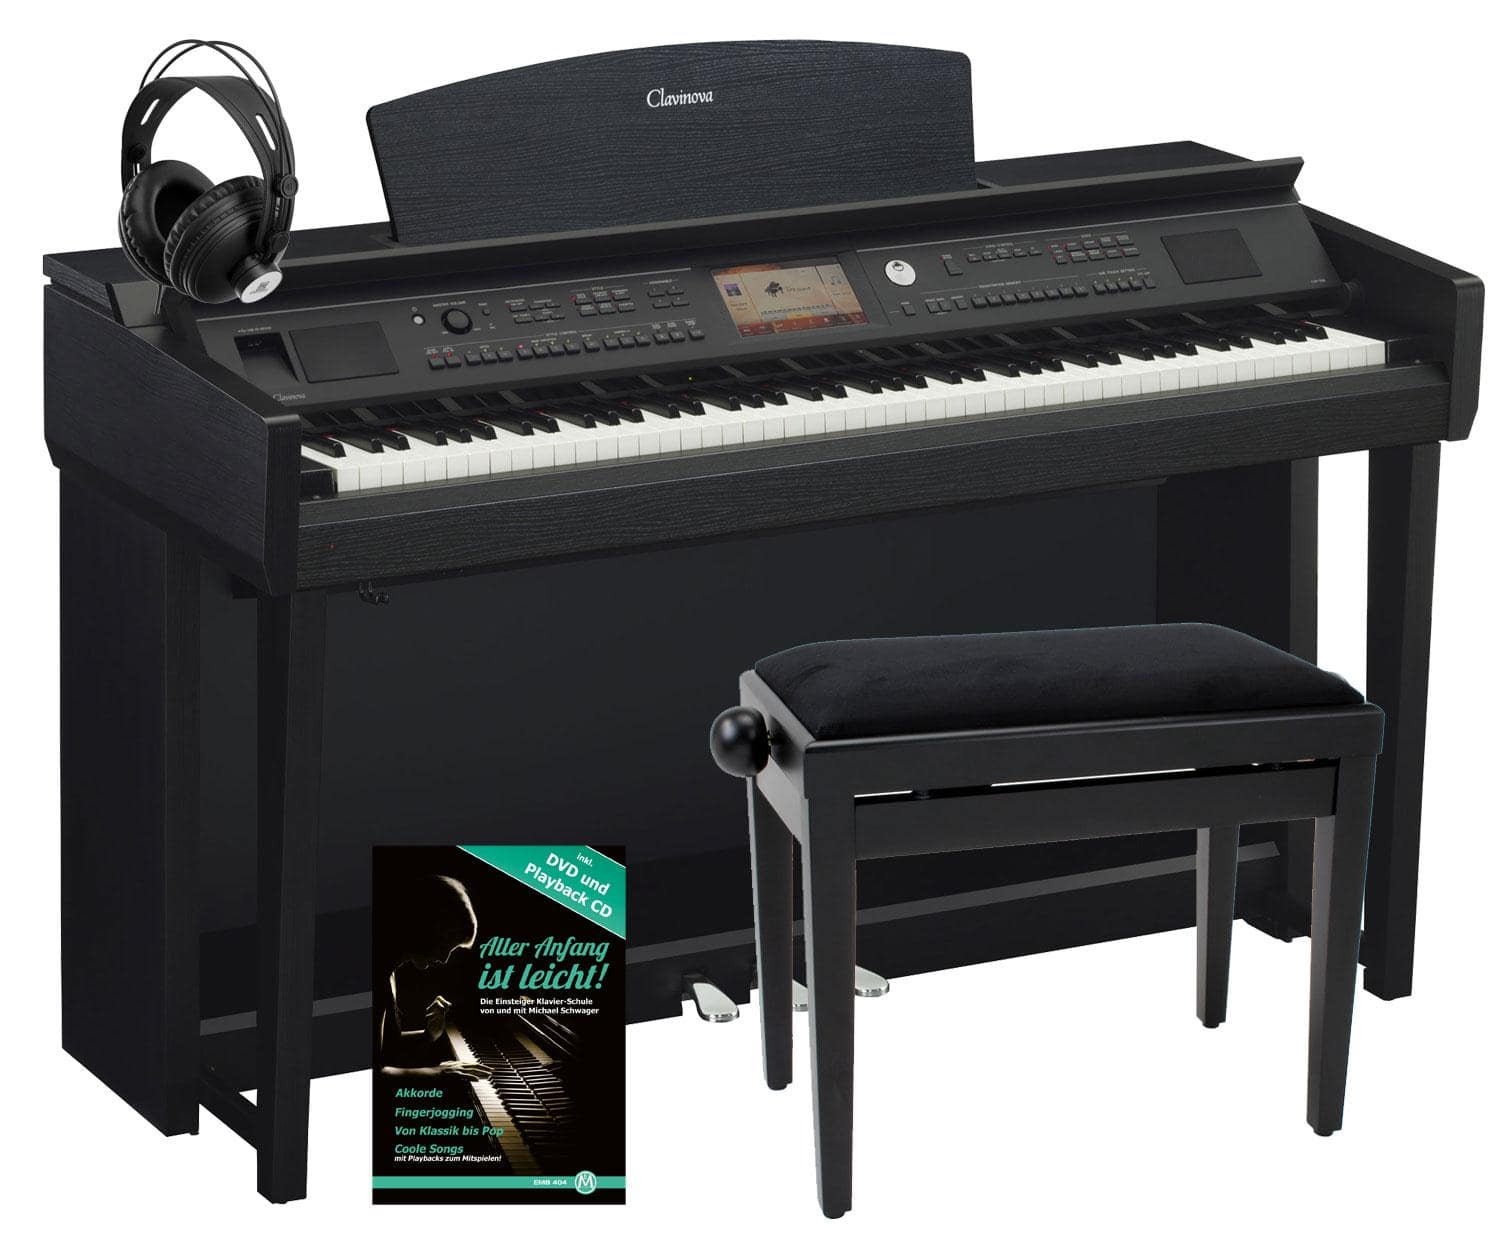 yamaha cvp 705 b clavinova digitalpiano schwarz matt set. Black Bedroom Furniture Sets. Home Design Ideas